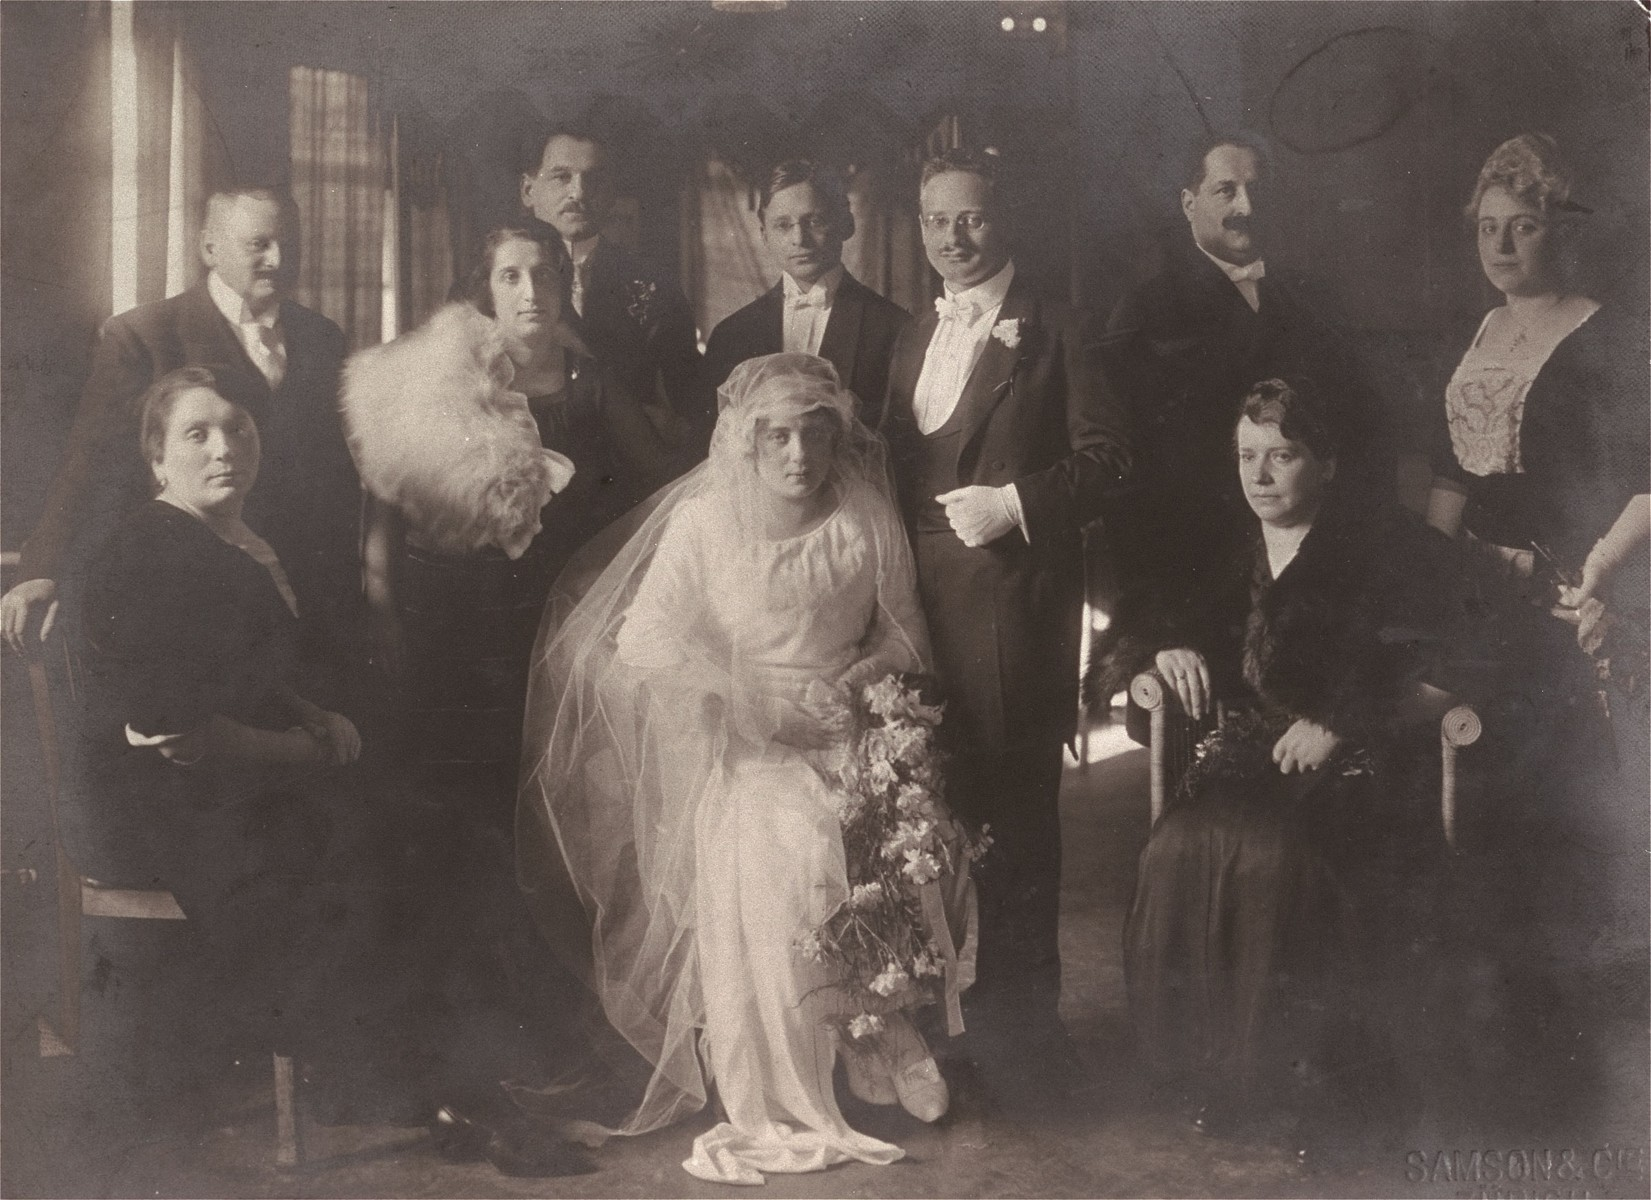 Portrait of the Braunschweig family at the wedding of Klara Braunschweig Woltar and Egon Kafka.    Pictured from left to right are: Leone and Leopold Blatt (Klara's sister and brother-in-law); Isaac Braunschweig (Klara's half brother) and his wife; and Herbert Braunschweig (Klara's brother); Egon Kafka; Rene and Bertha (Braunschweig) Weil (Klara's brother-in-law and sister). Sitting on the right is Regine Braunschweig (Klara's half sister).